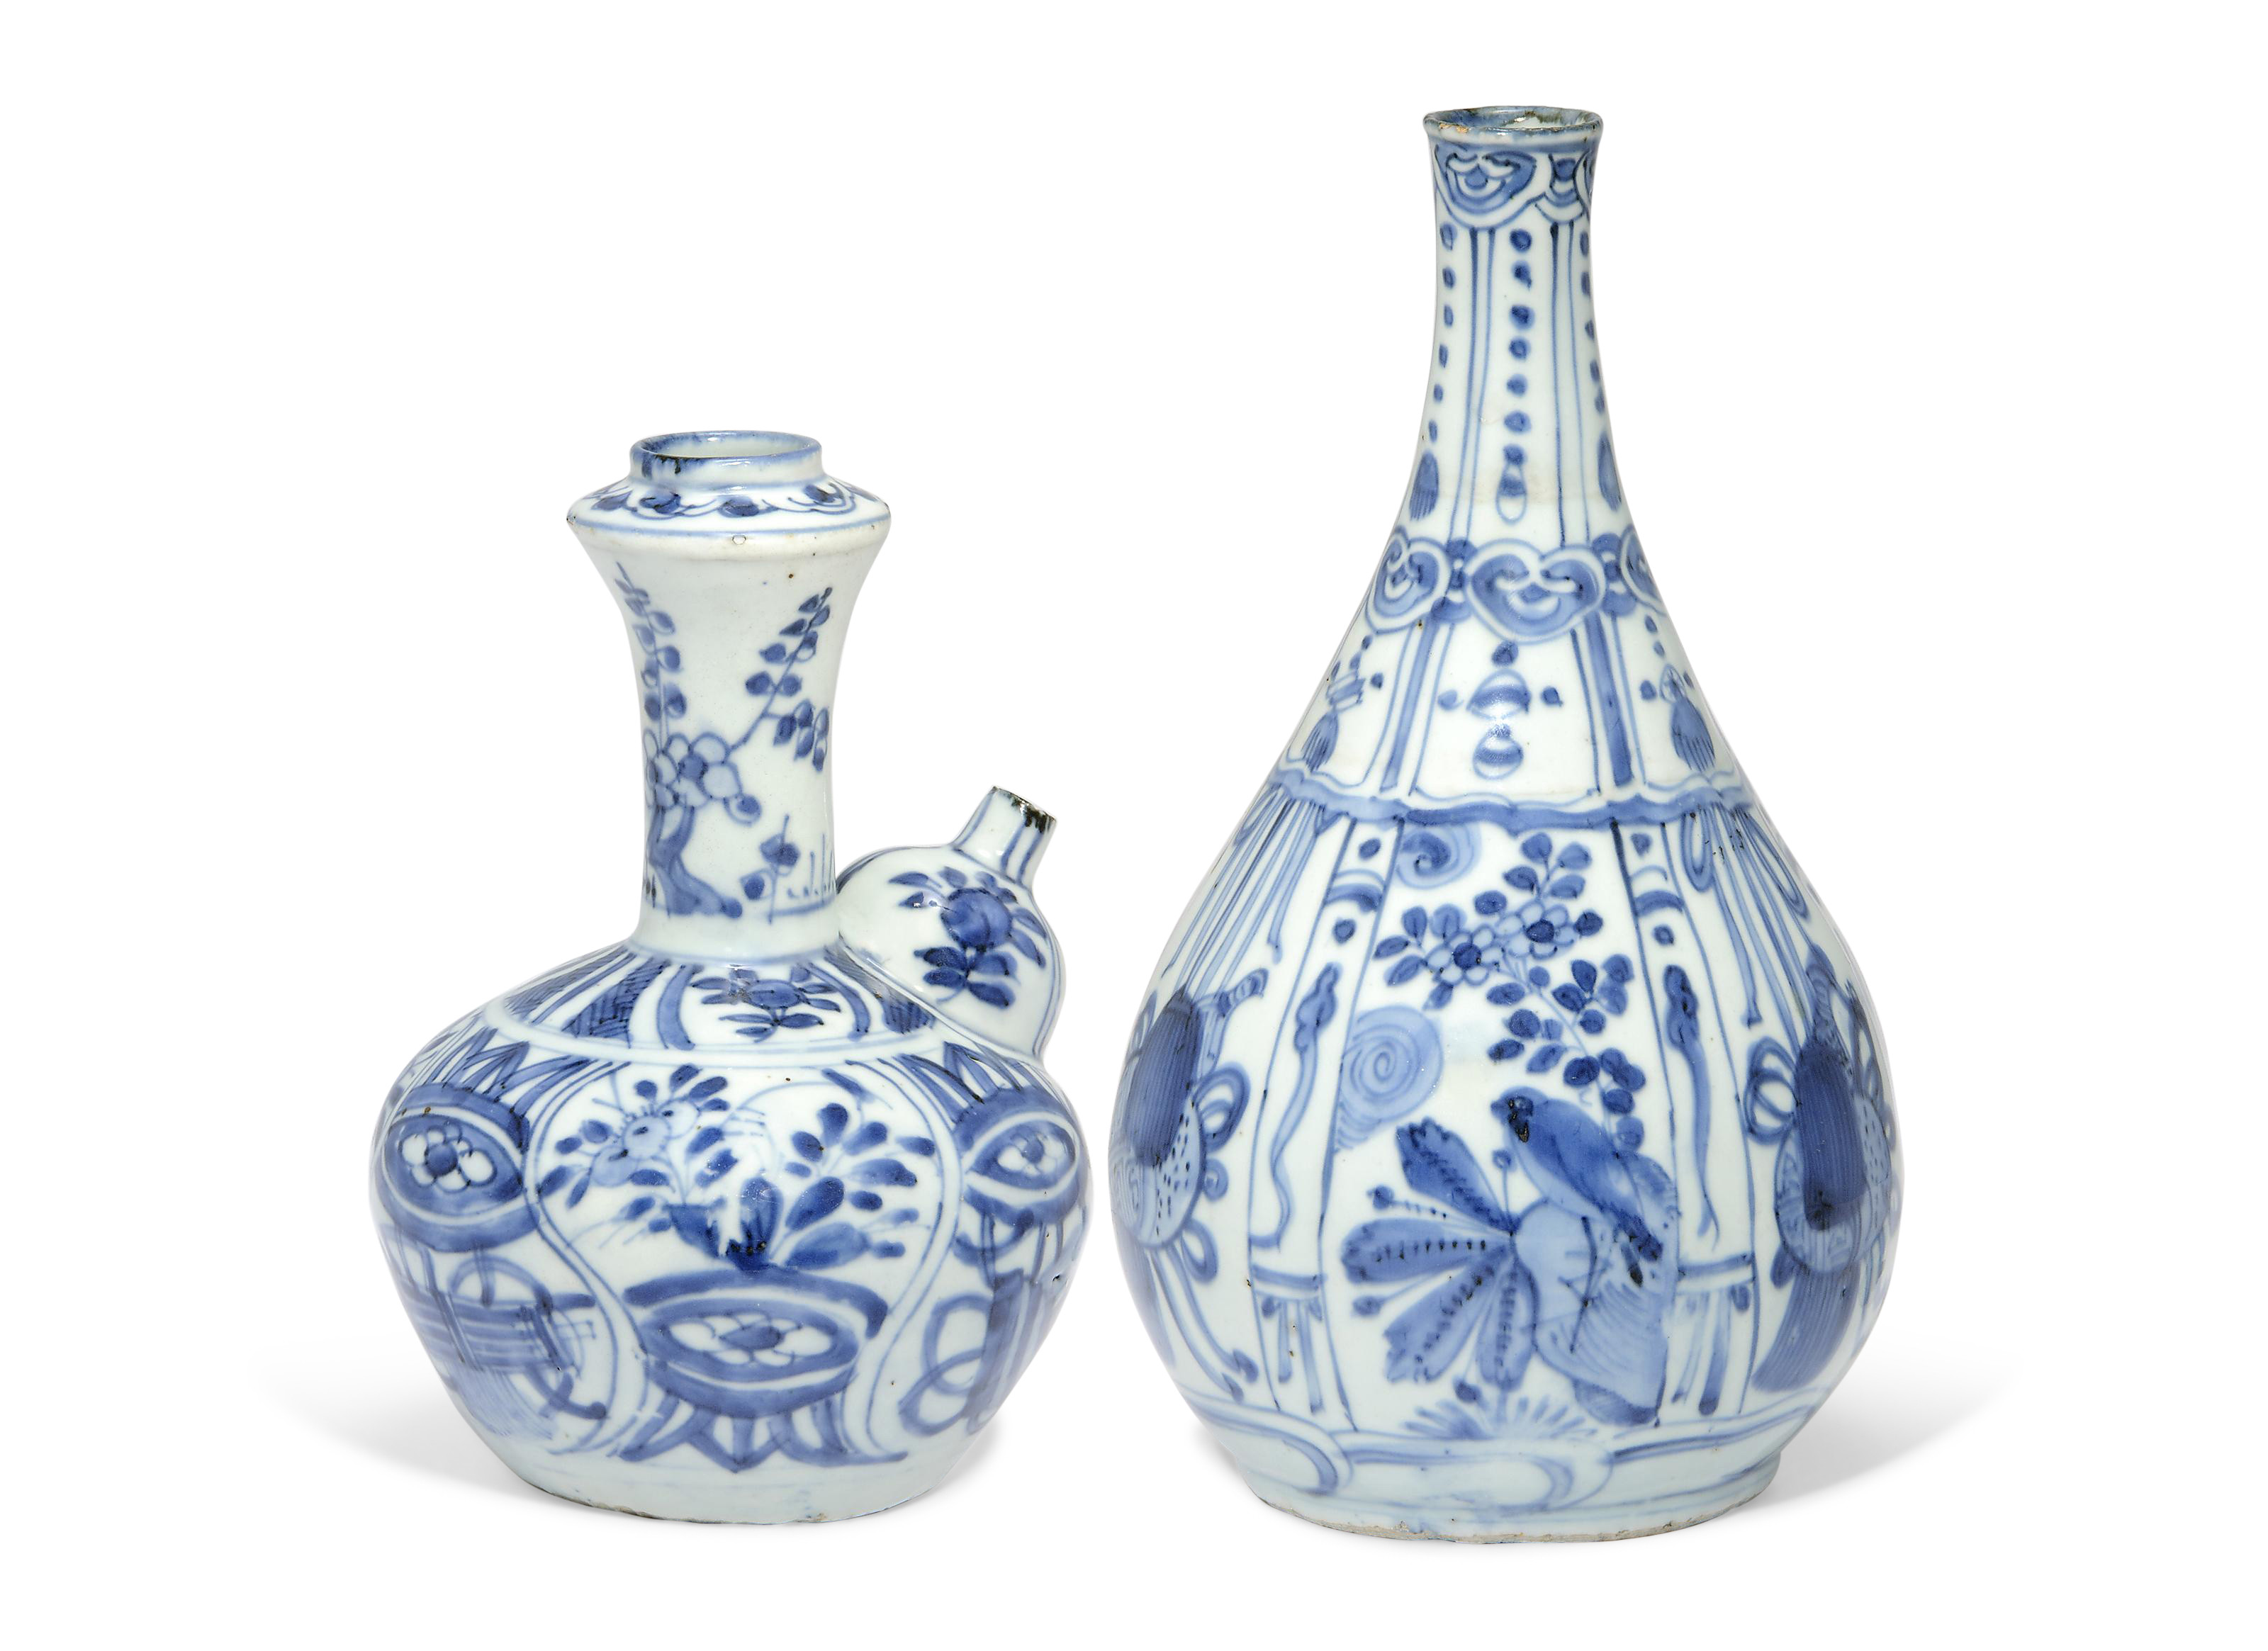 cobalt blue glass vases of a blue and white kendi and a bottle vase wanli period 1573 1619 regarding a blue and white kendi and a bottle vase wanli period 1573 1619 christies